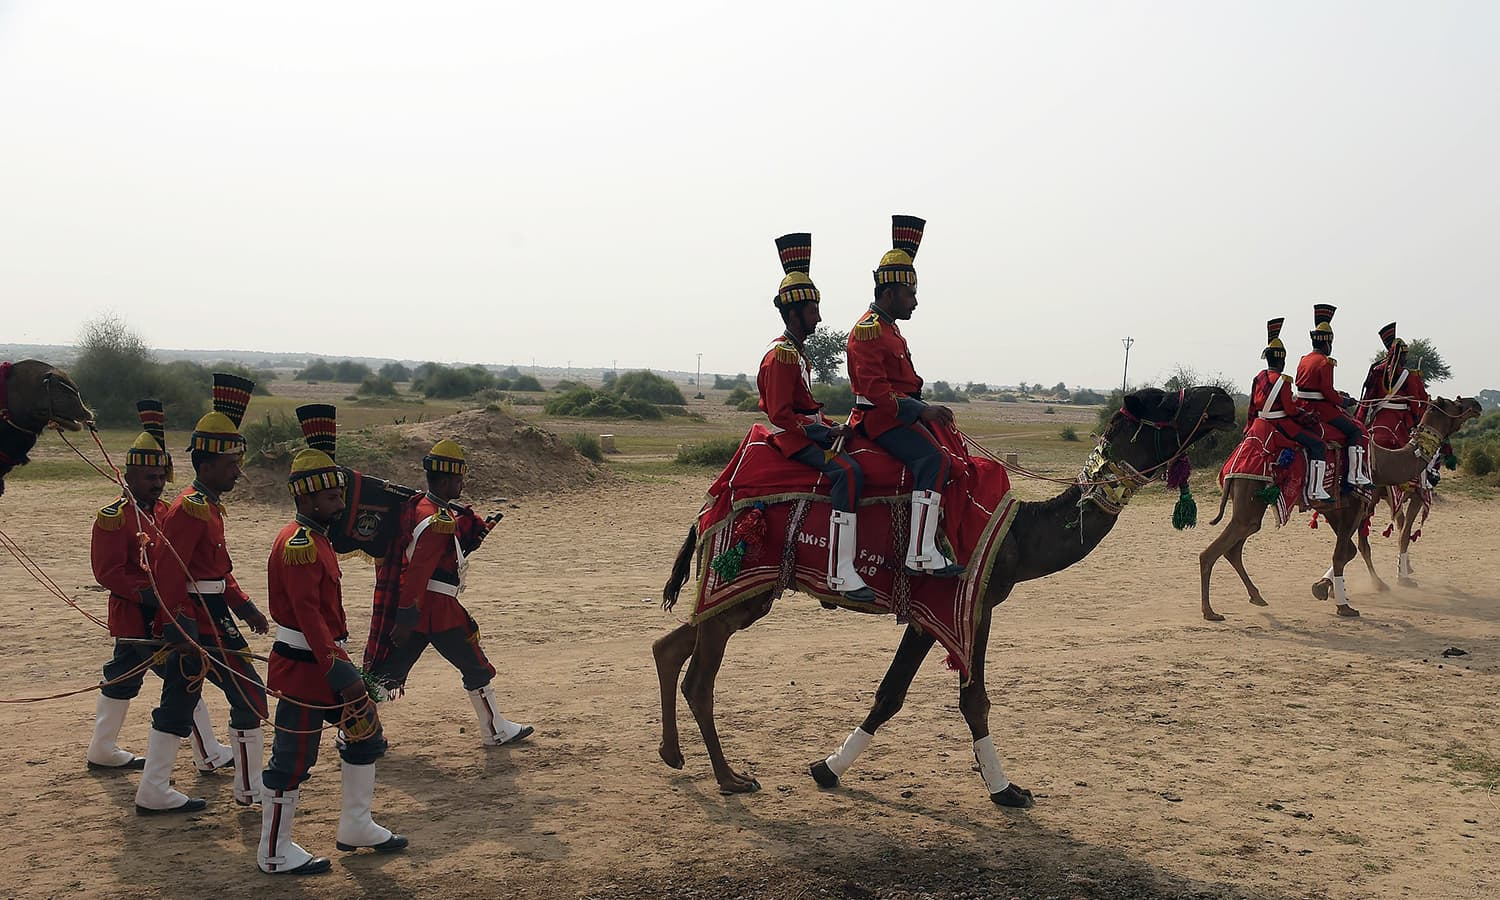 In this photograph taken on November 13, 2015, band members of Pakistan Desert Rangers, arrive after performing in Moj Garh, some 100 kilometres east of Bahawalpur in Punjab province. —AFP